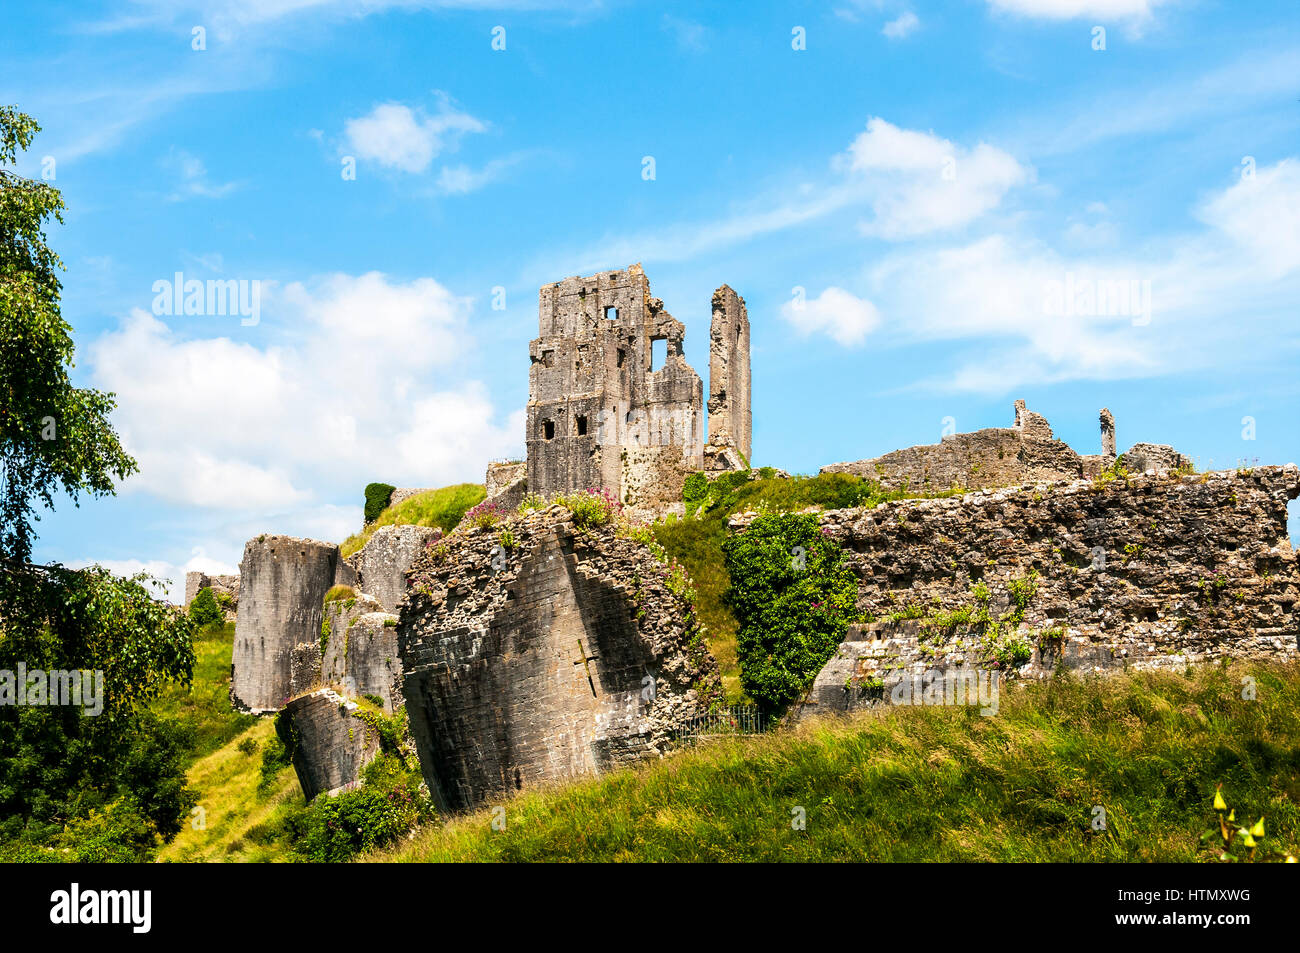 The Keep of the romantic ruins of 1000 year old Corfe Castle standing above fallen towers and walls, amid a profusion - Stock Image